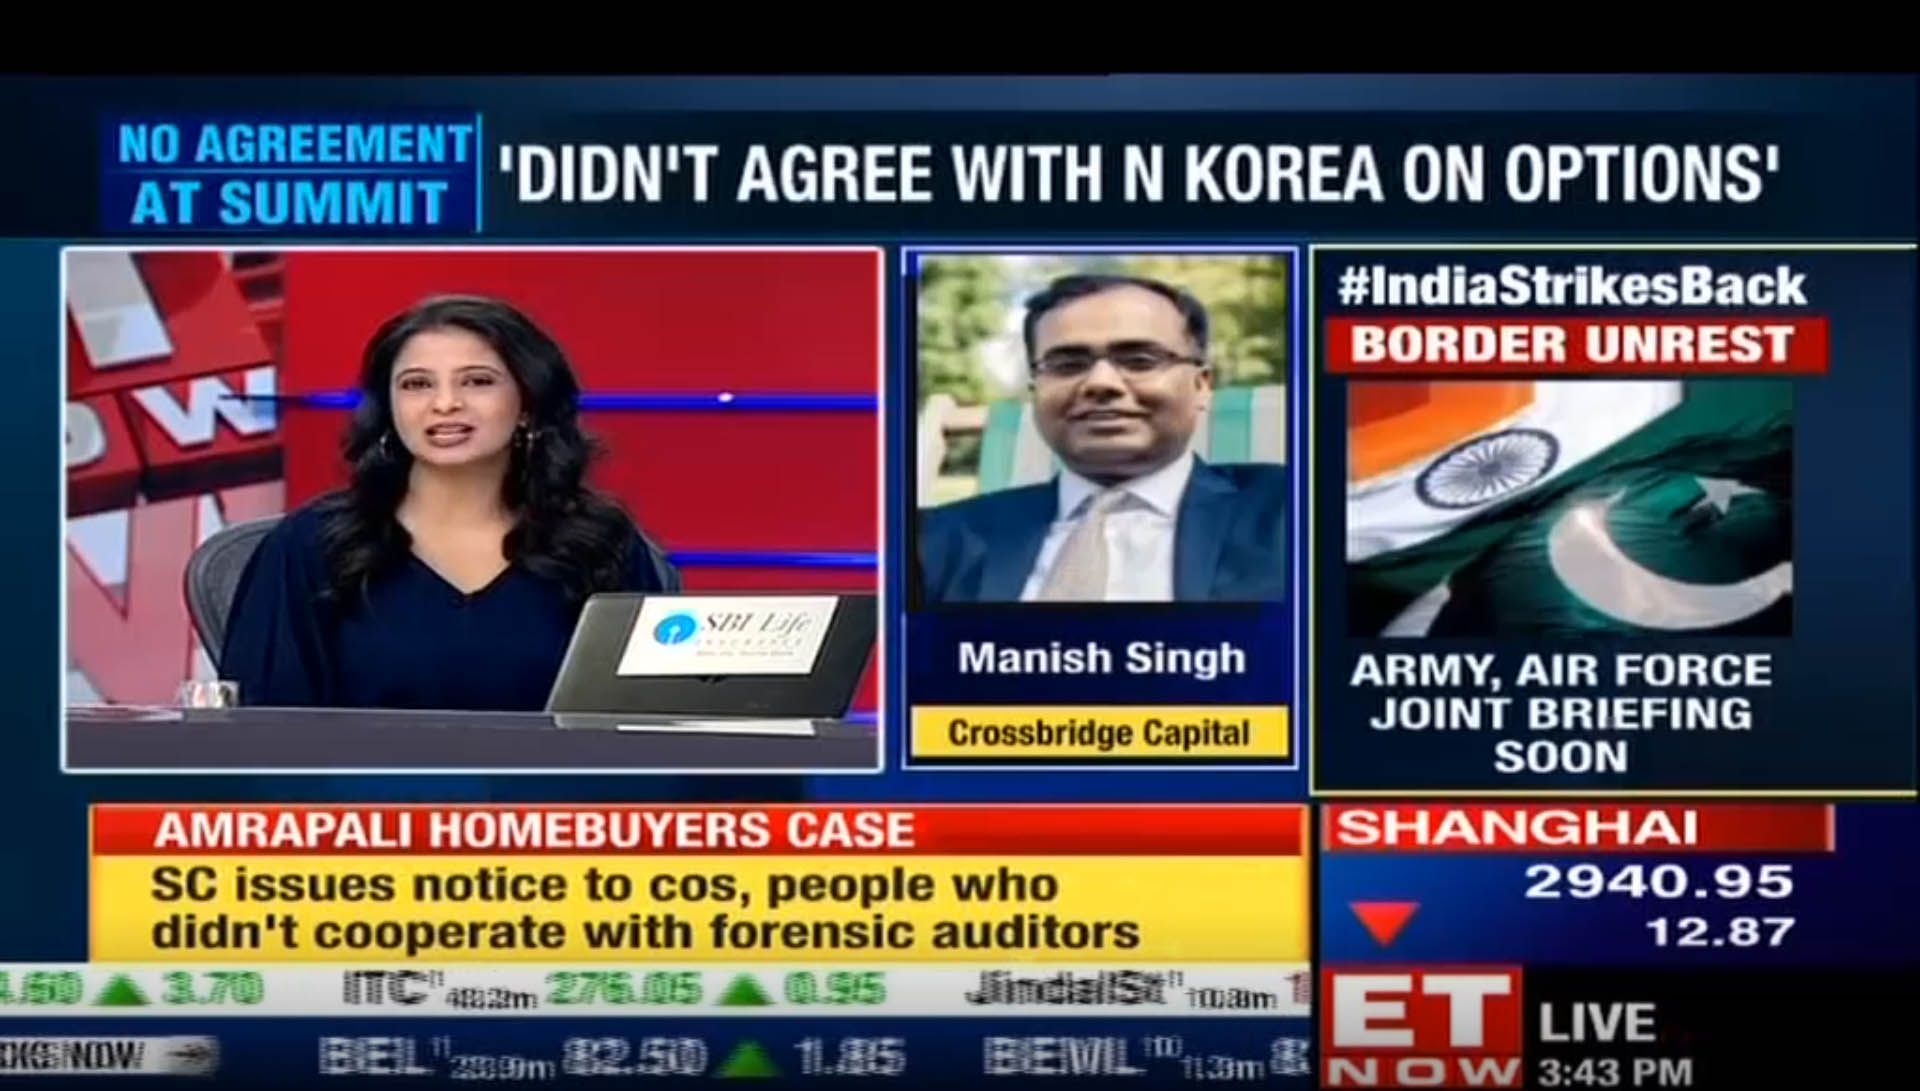 Crossbridge Capital's Manish Singh talks about the possible outcomes from Trump-Kim summit.